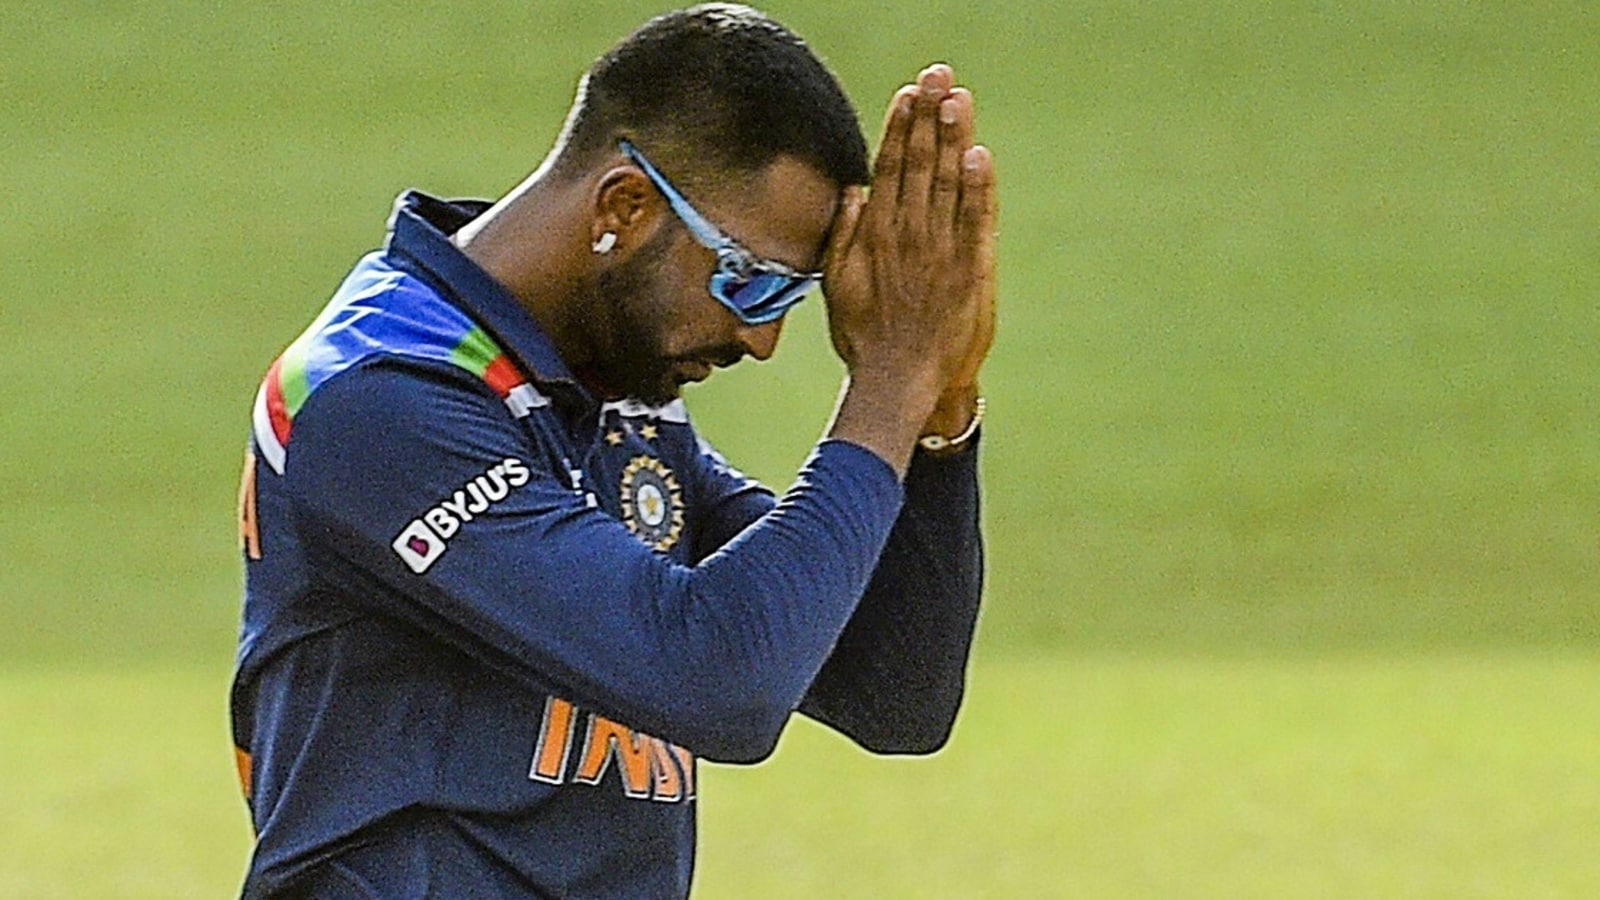 Krunal Pandya tests positive for Covid-19, 2nd T20I vs SL postponed to 28th  July | Cricket - Hindustan Times